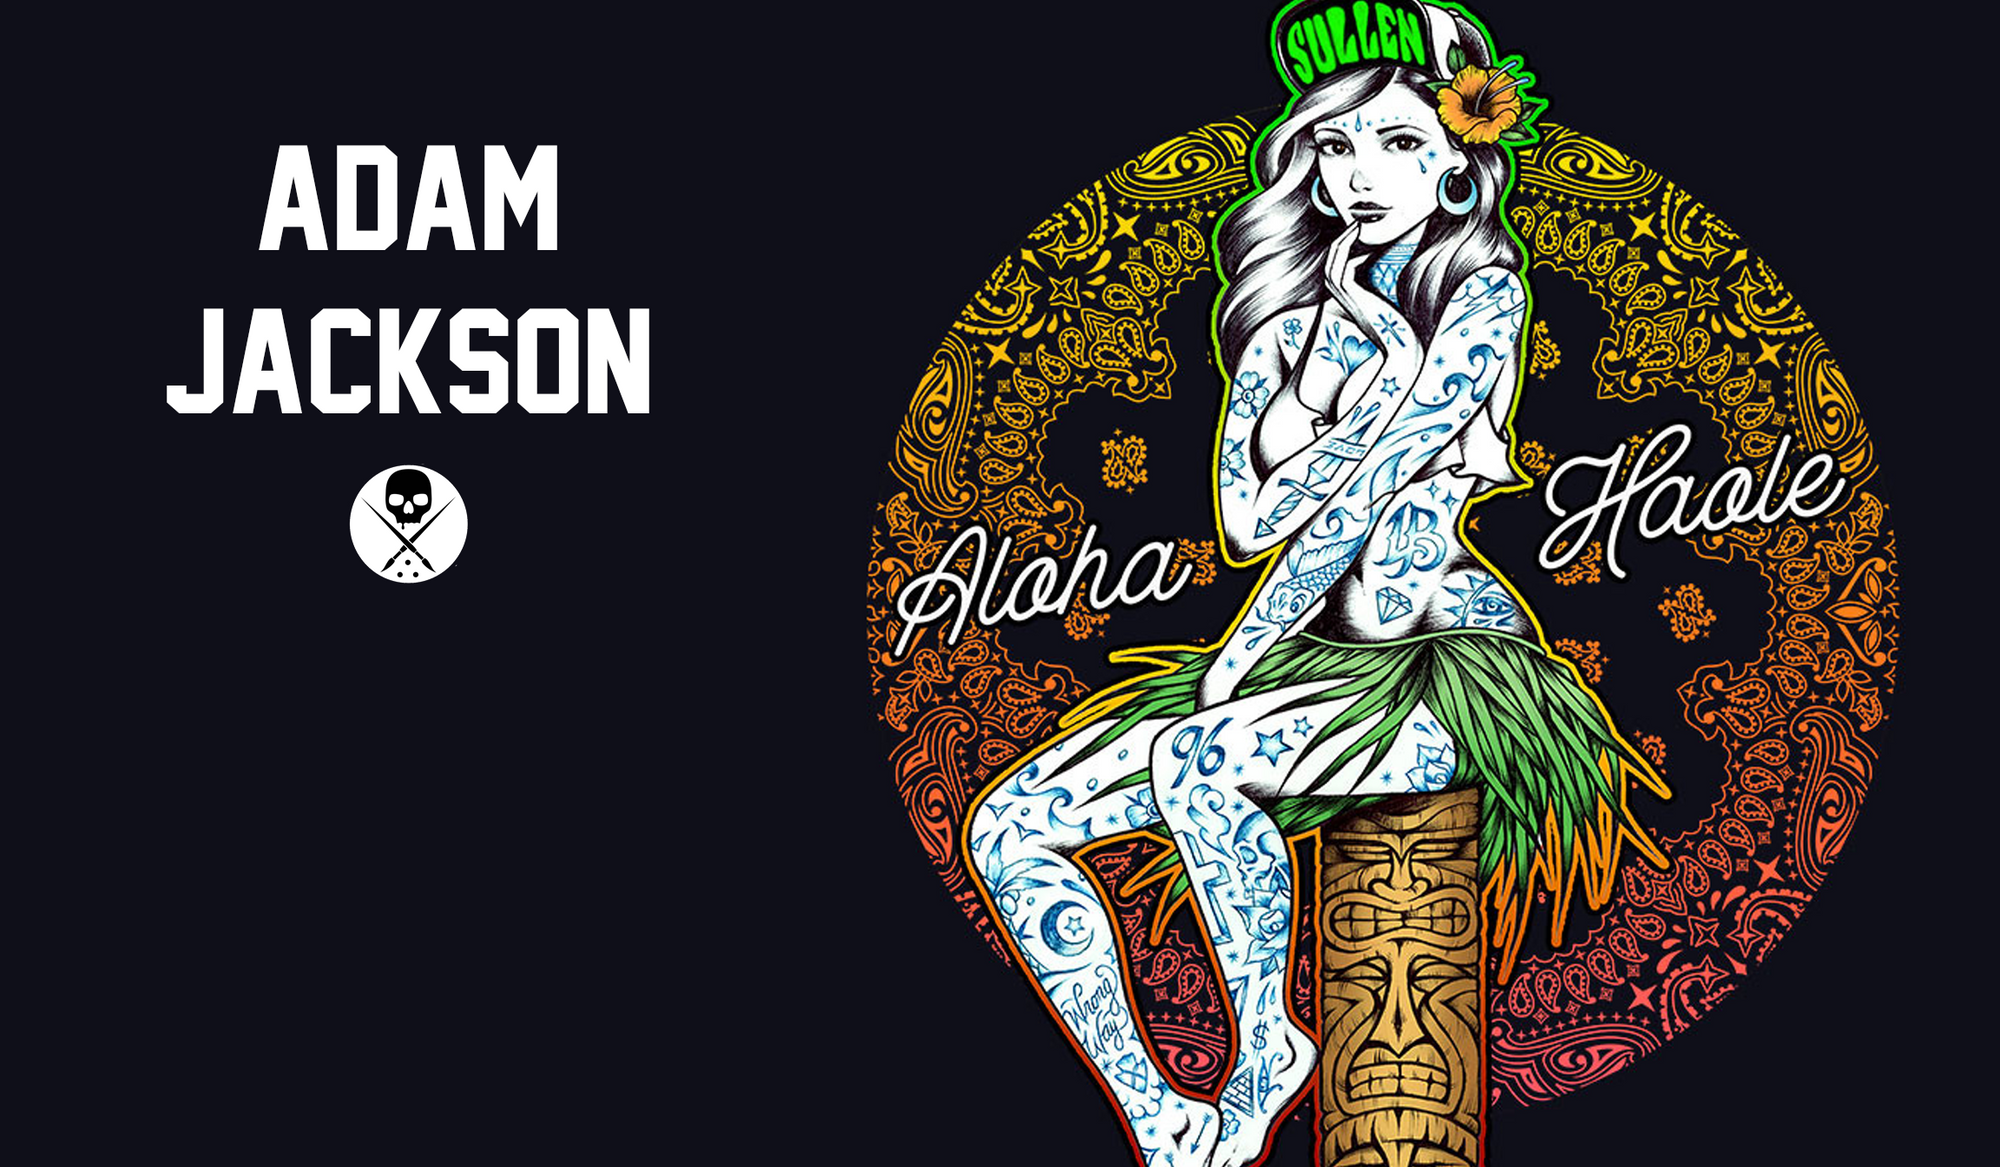 Adam Jackson - Tattoo Artist Shirt Series